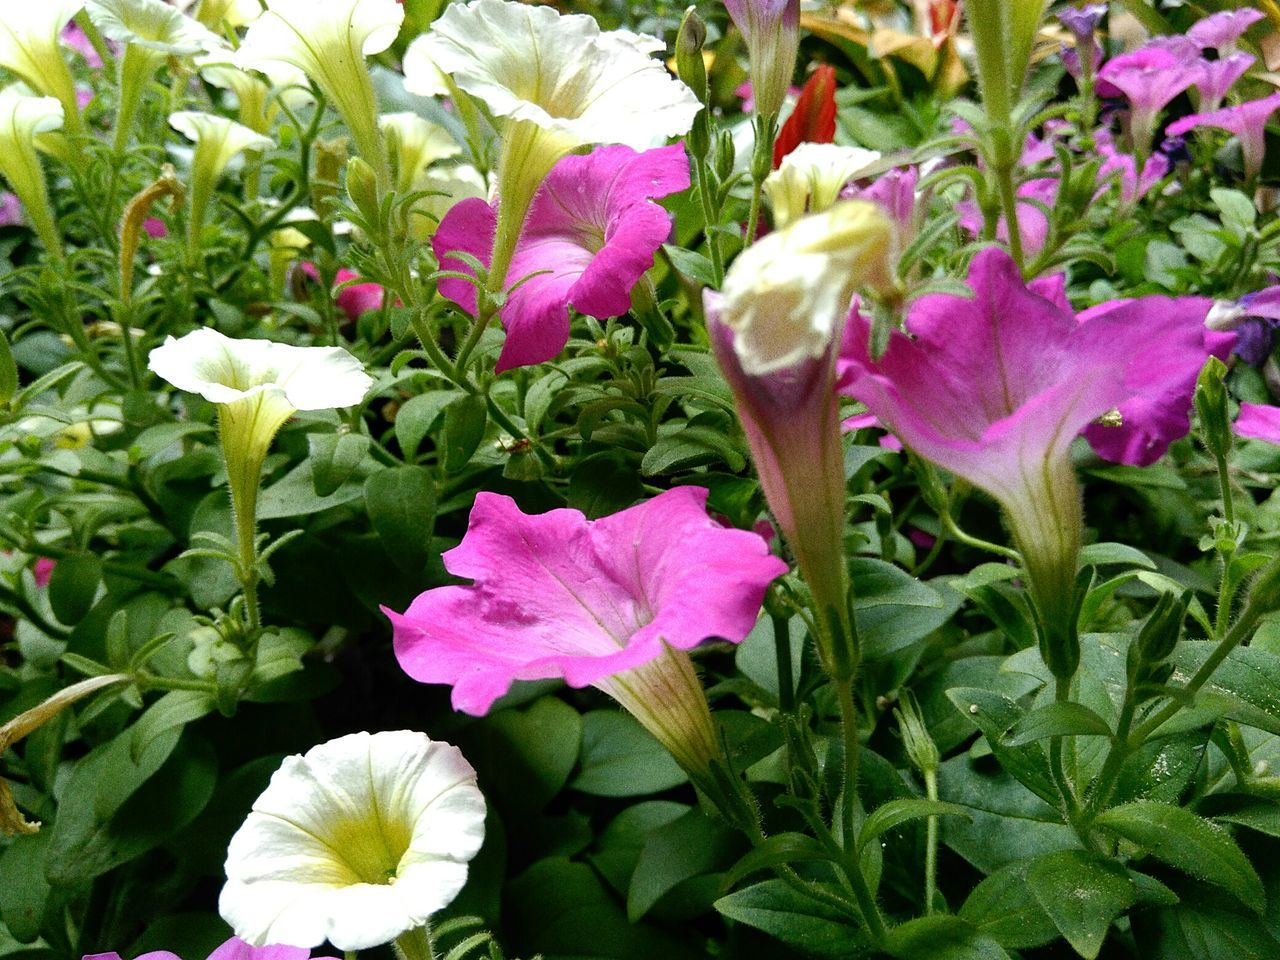 flower, petal, growth, fragility, freshness, beauty in nature, flower head, nature, plant, no people, green color, leaf, blooming, day, outdoors, close-up, petunia